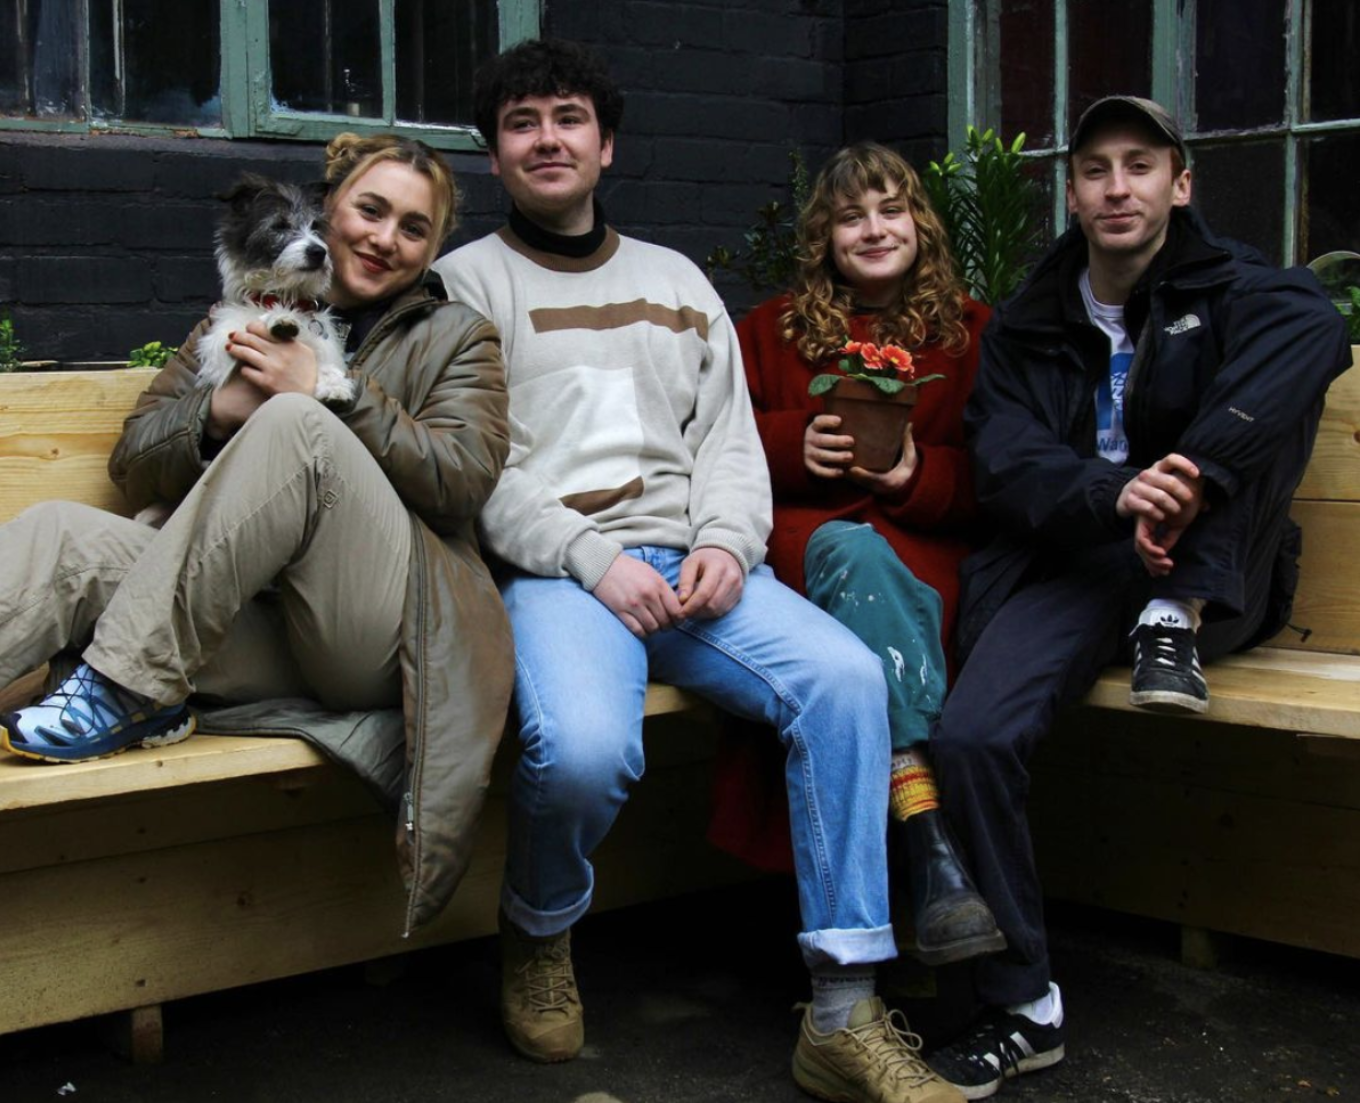 Four people sit together on a wooden corner bench, smiling into the camera, surrounded by greenery. The person on the far left holds a coarse-haired Jack Russell on their lap. The person sitting just right of holds a plant pot with bright orange flowers.